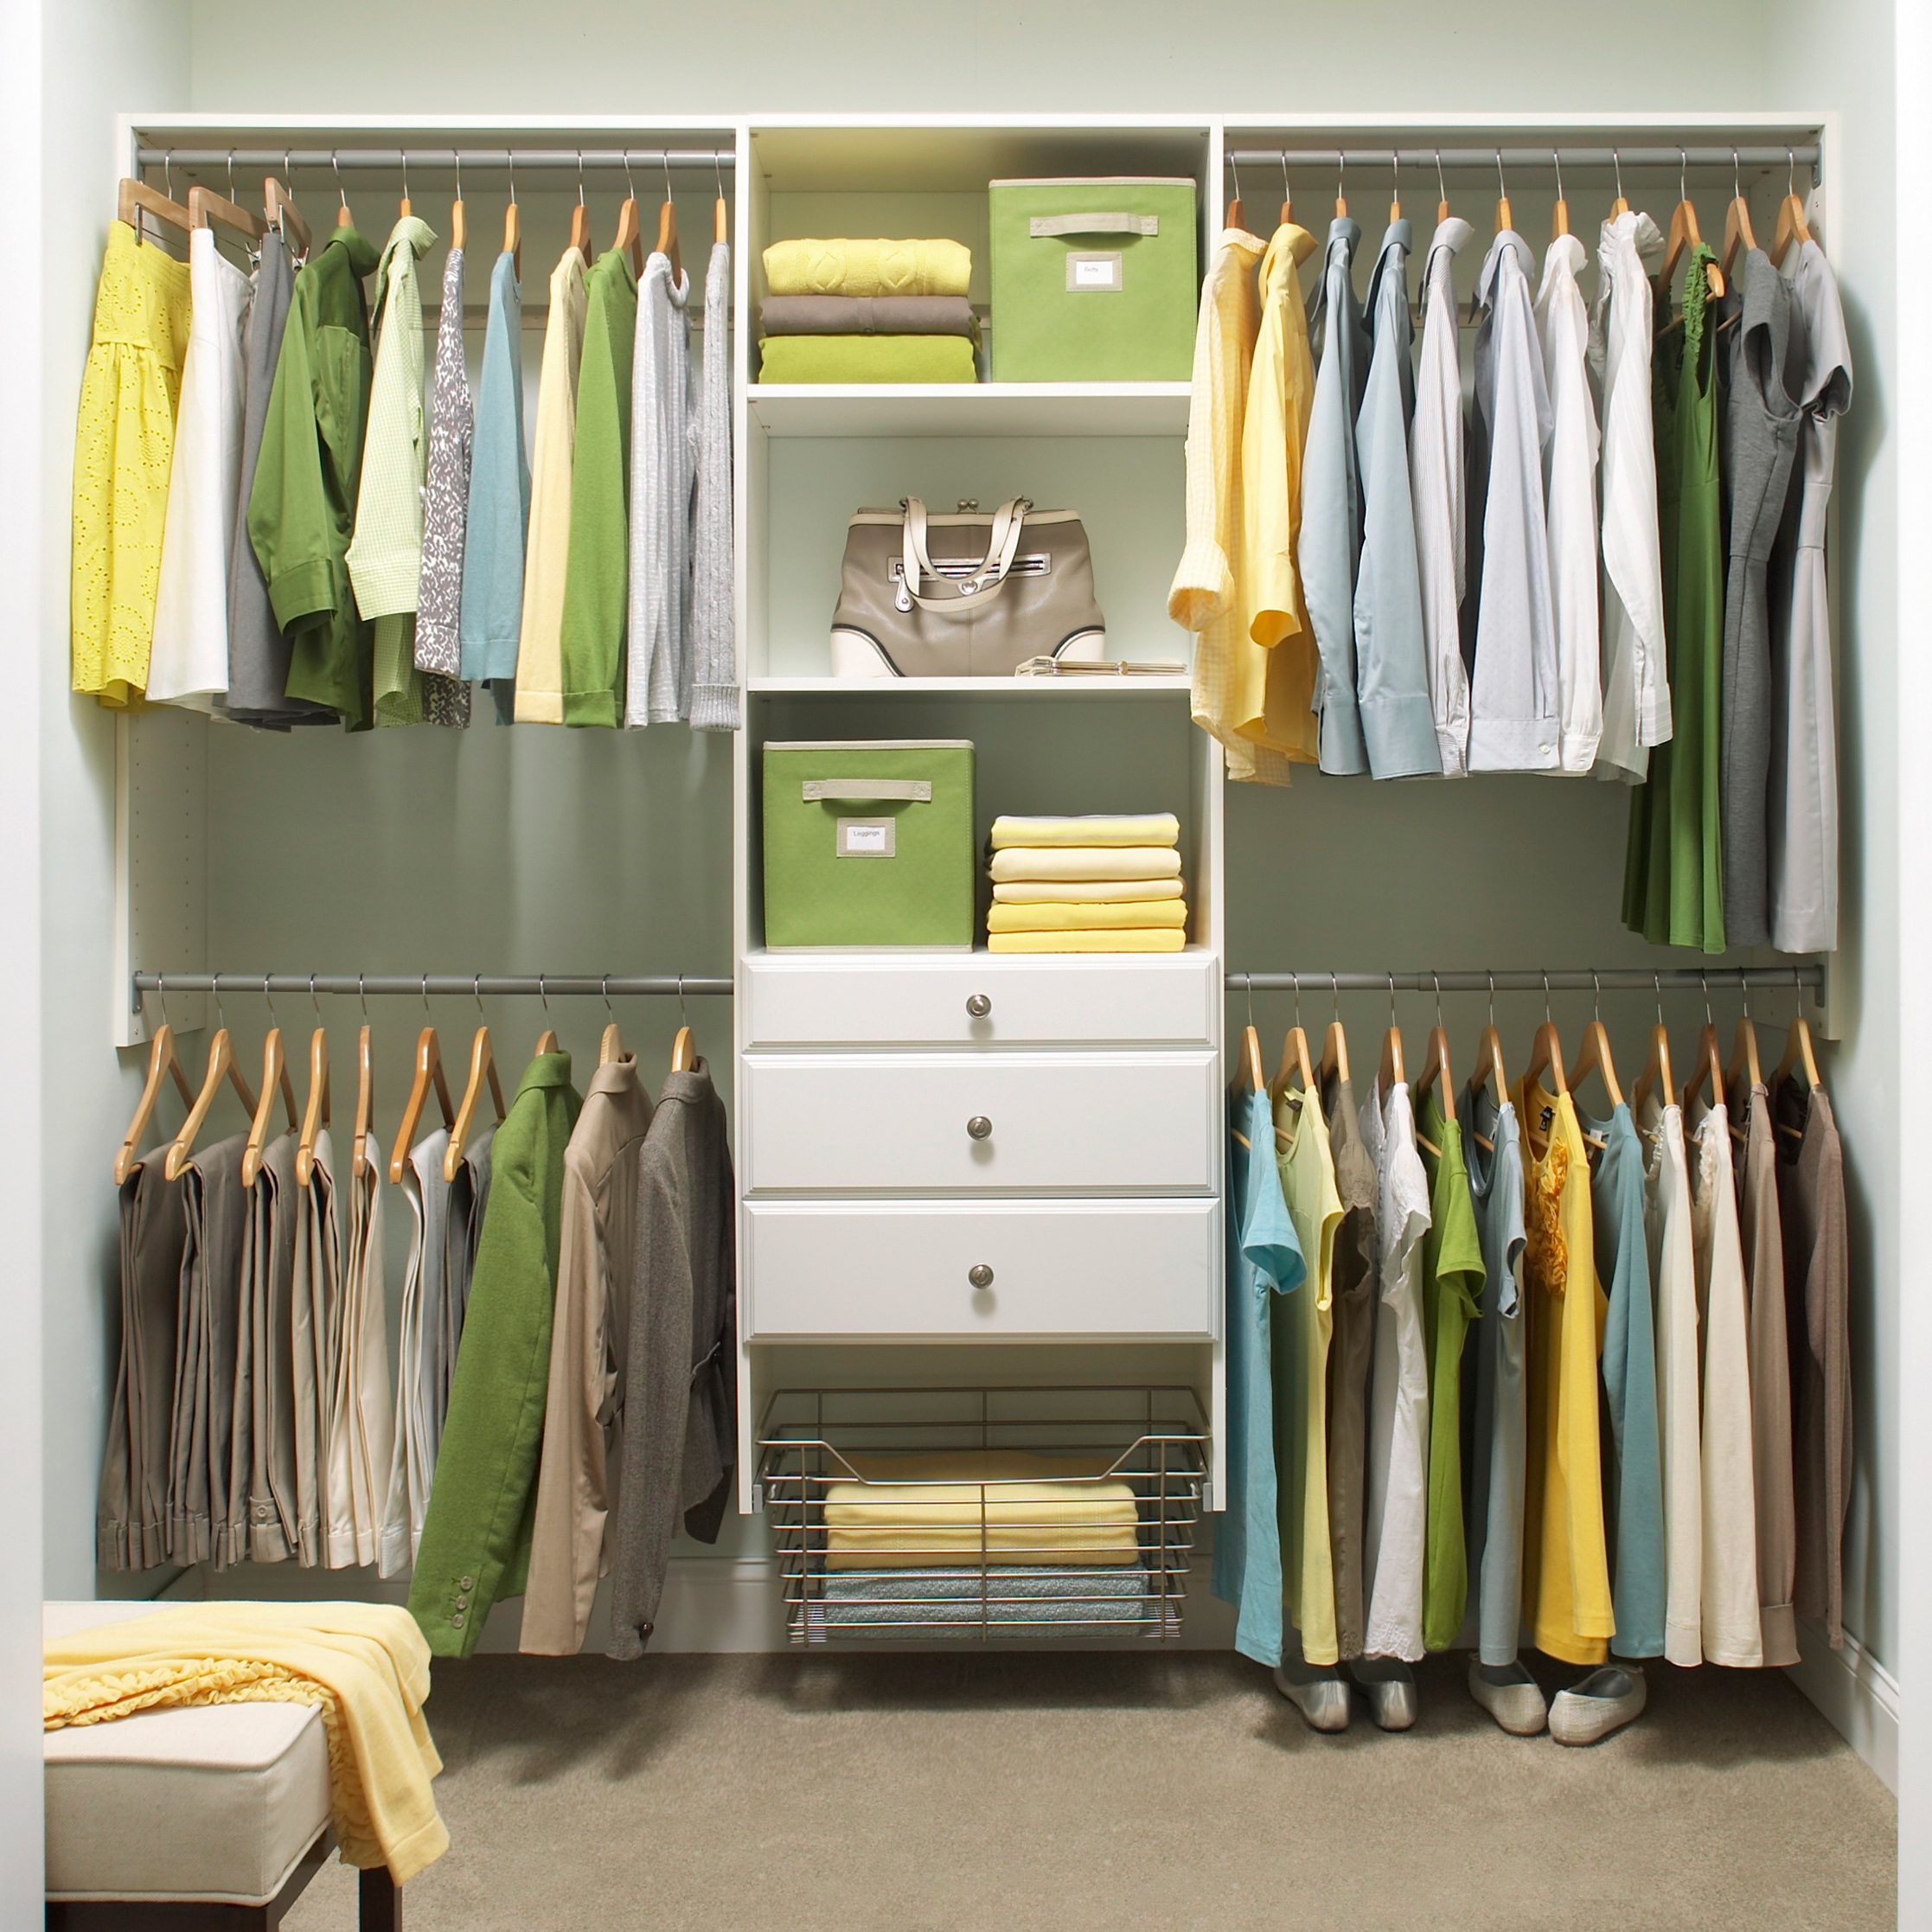 closet organization made simple by martha stewart living at the home depot closet system - Home Depot Closet Designer